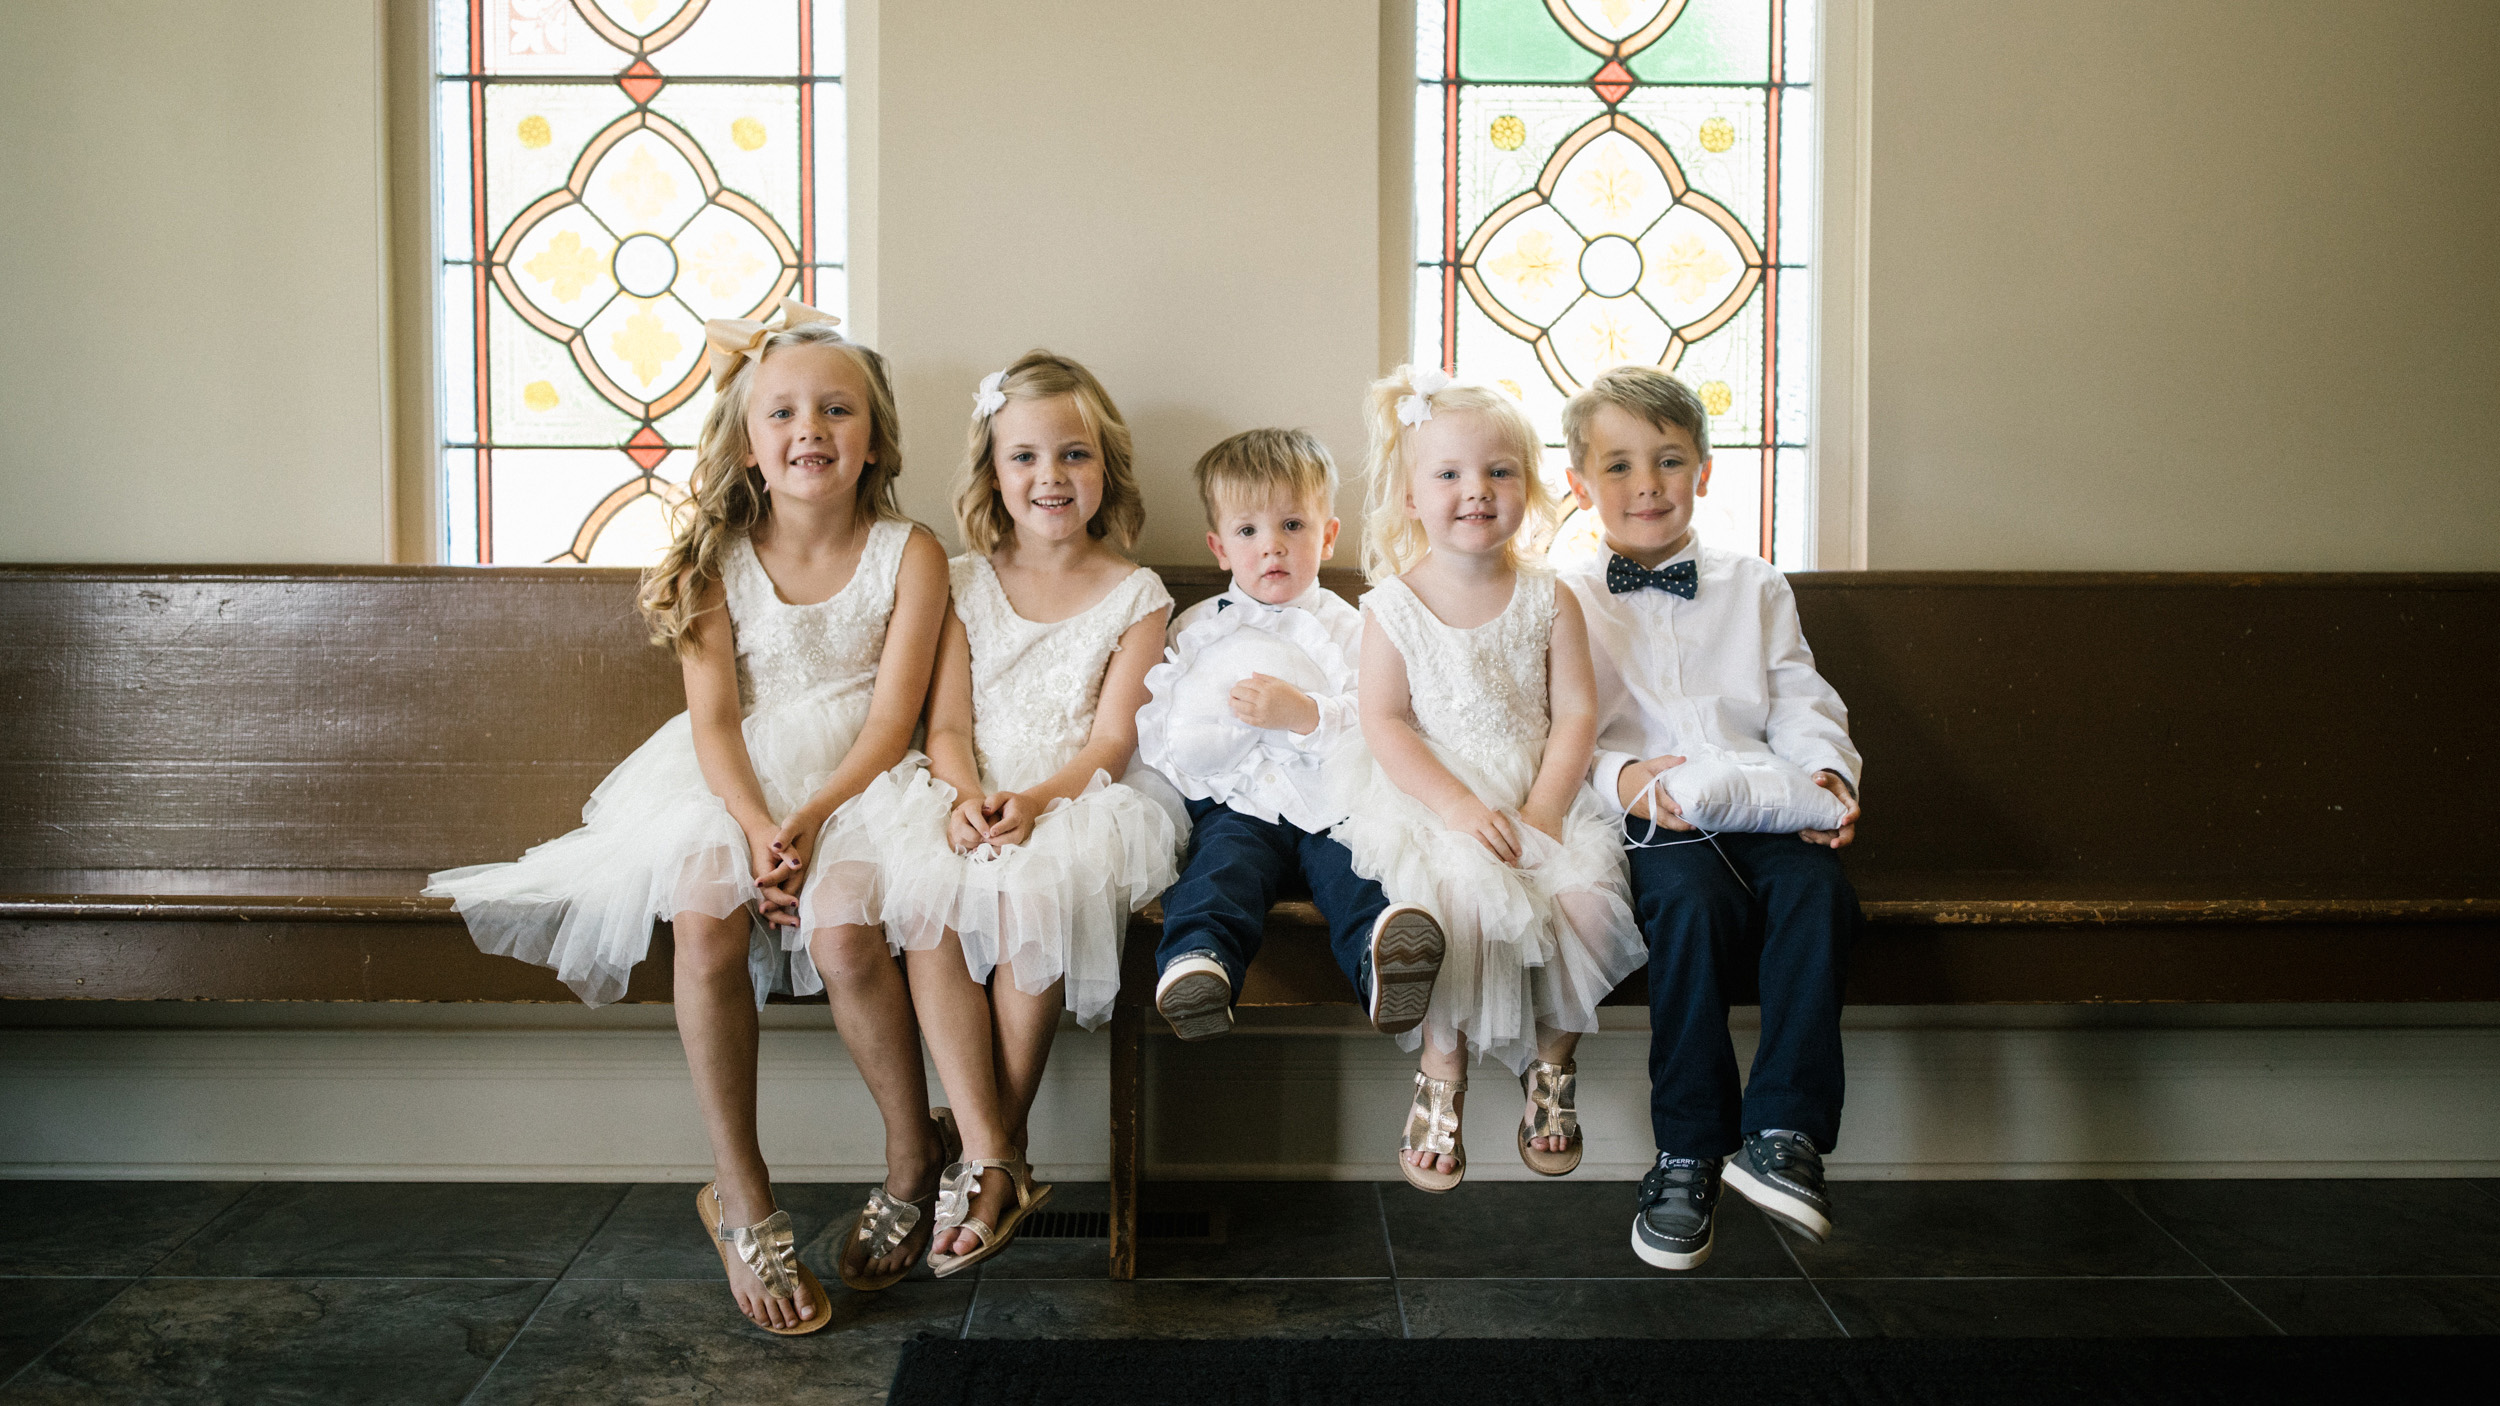 alec_vanderboom_john_micahel_lucy_kansas_city_wedding_photographer-0021.jpg